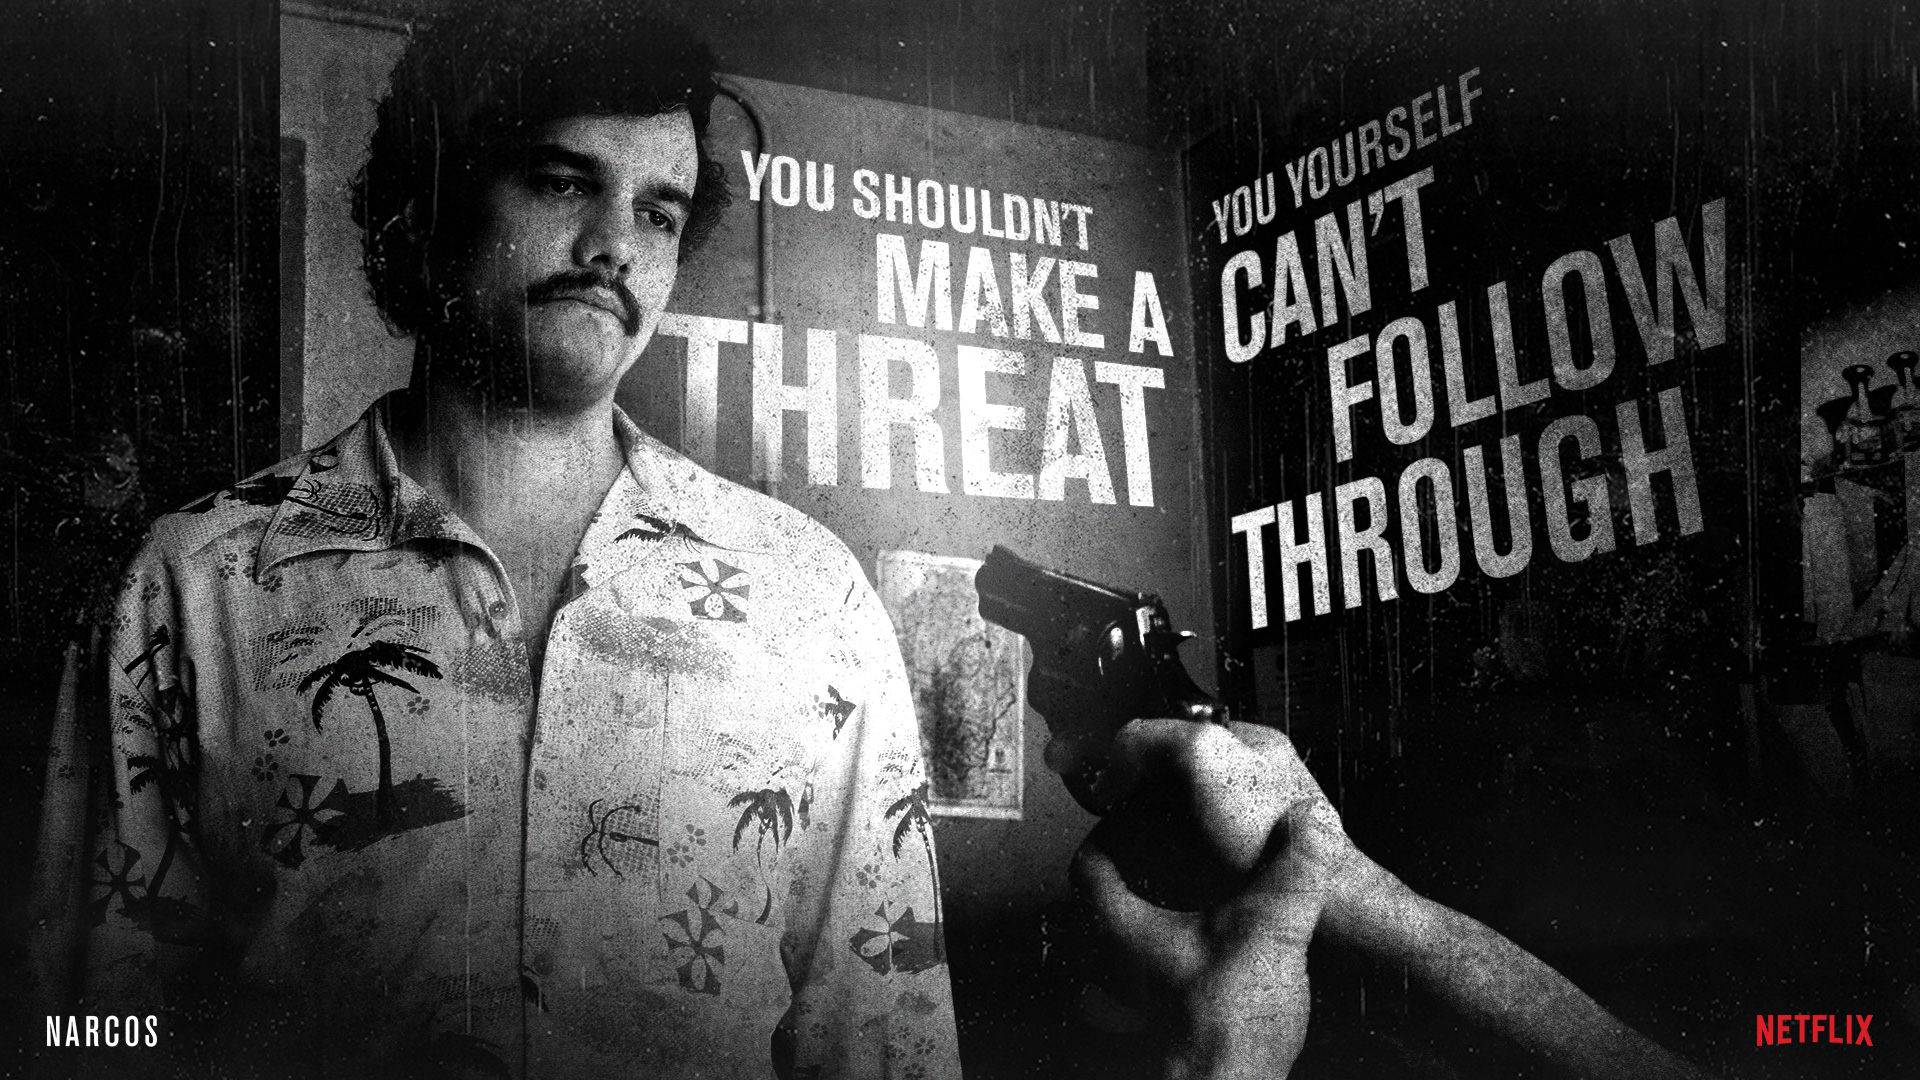 Narcos Threat